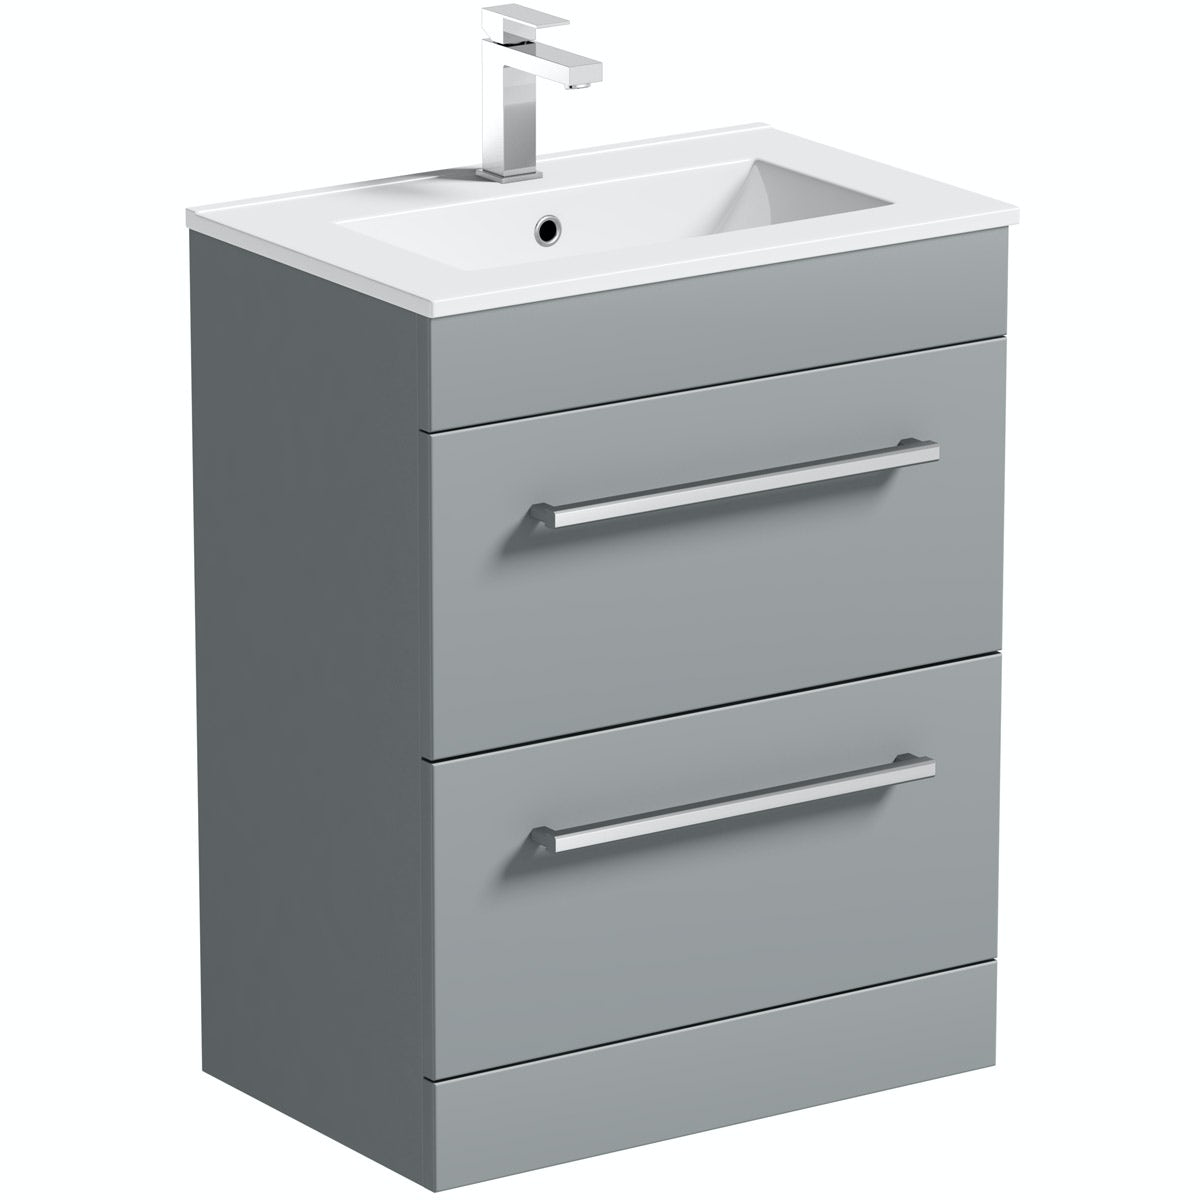 Orchard Derwent grey vanity drawer unit and basin 600mm